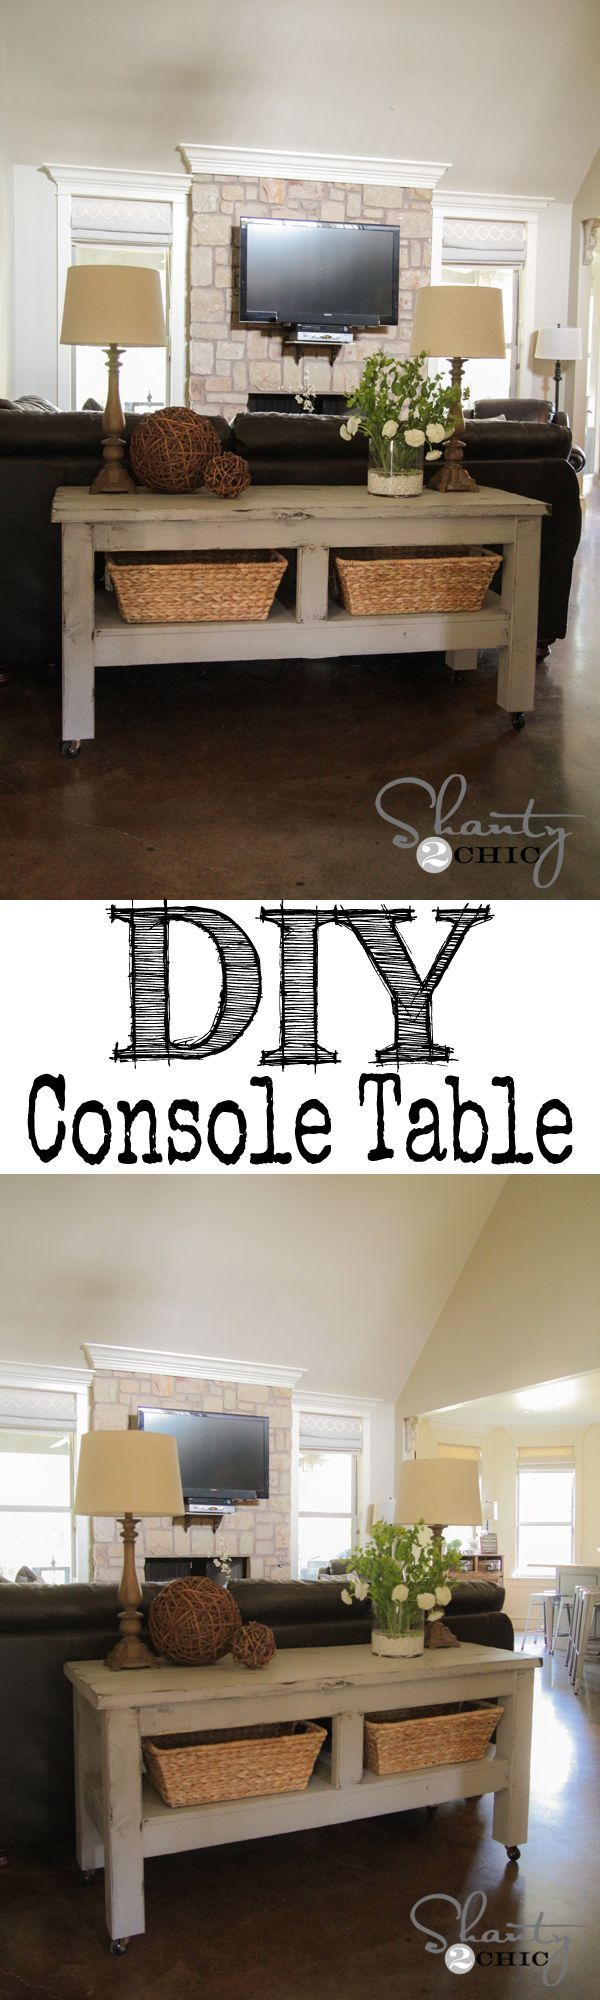 Try My $80 Pottery Barn Impressed Console Desk! – Shanty 2 Stylish